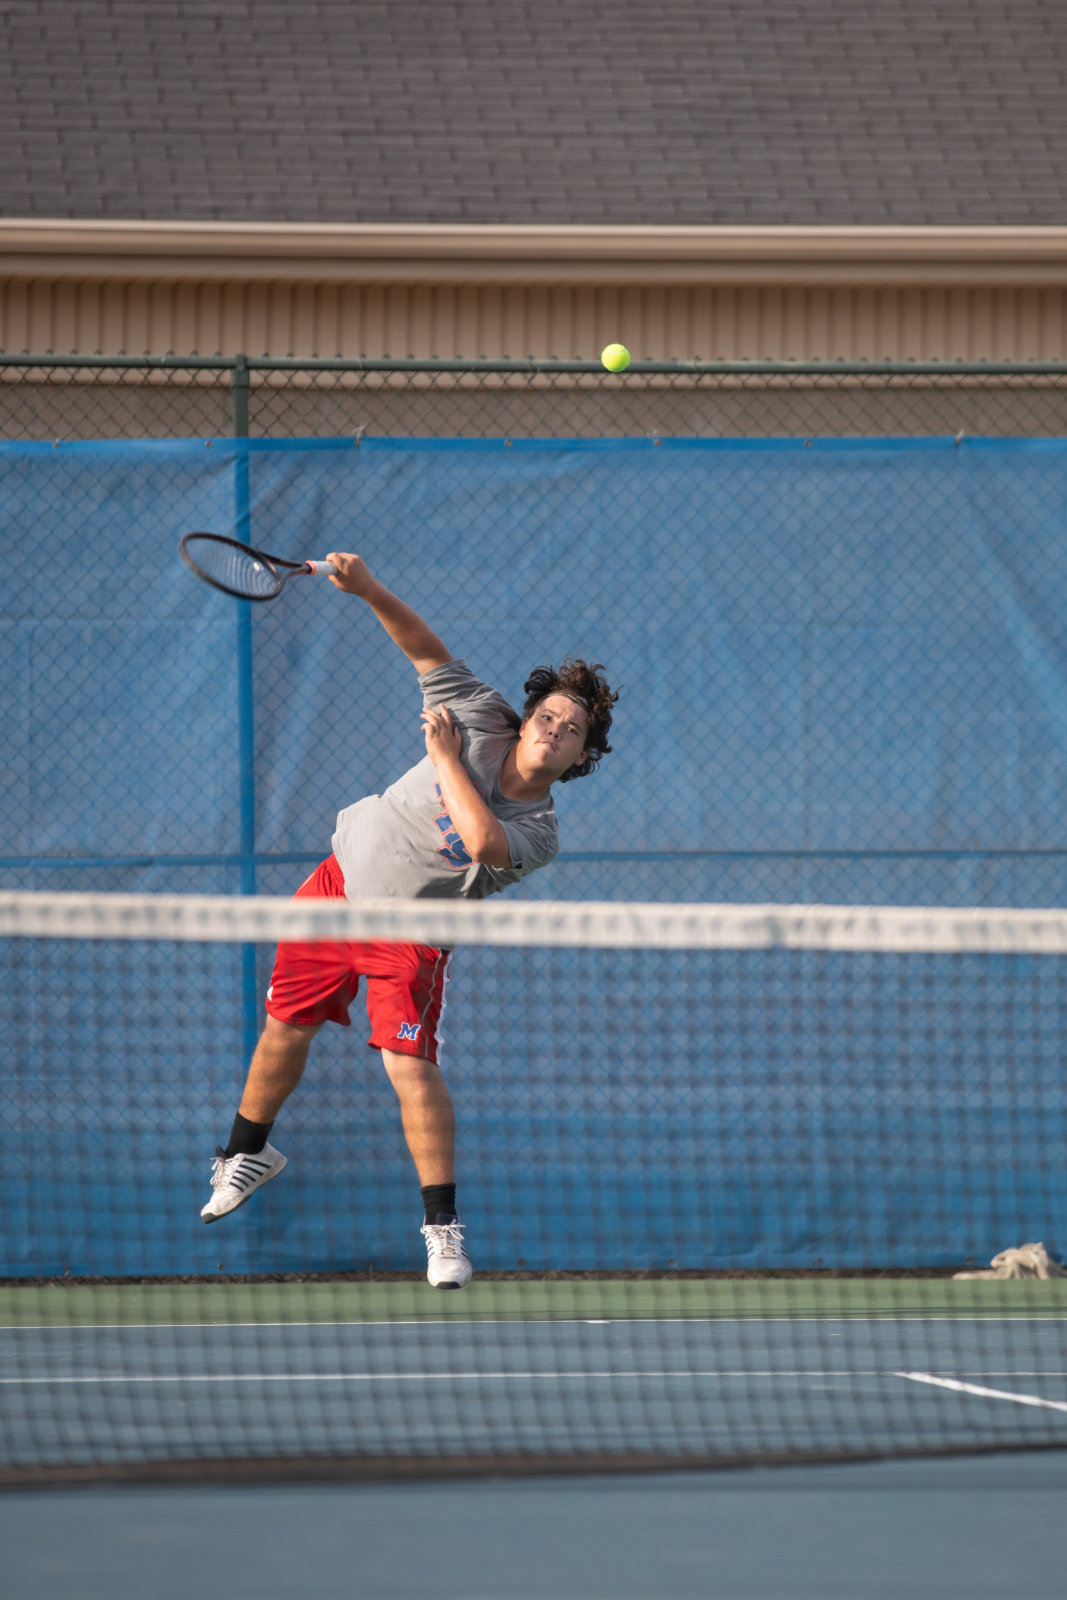 MARTINSVILLE HIGH SCHOOL | VARSITY BOYS TENNIS VS EDGEWOOD